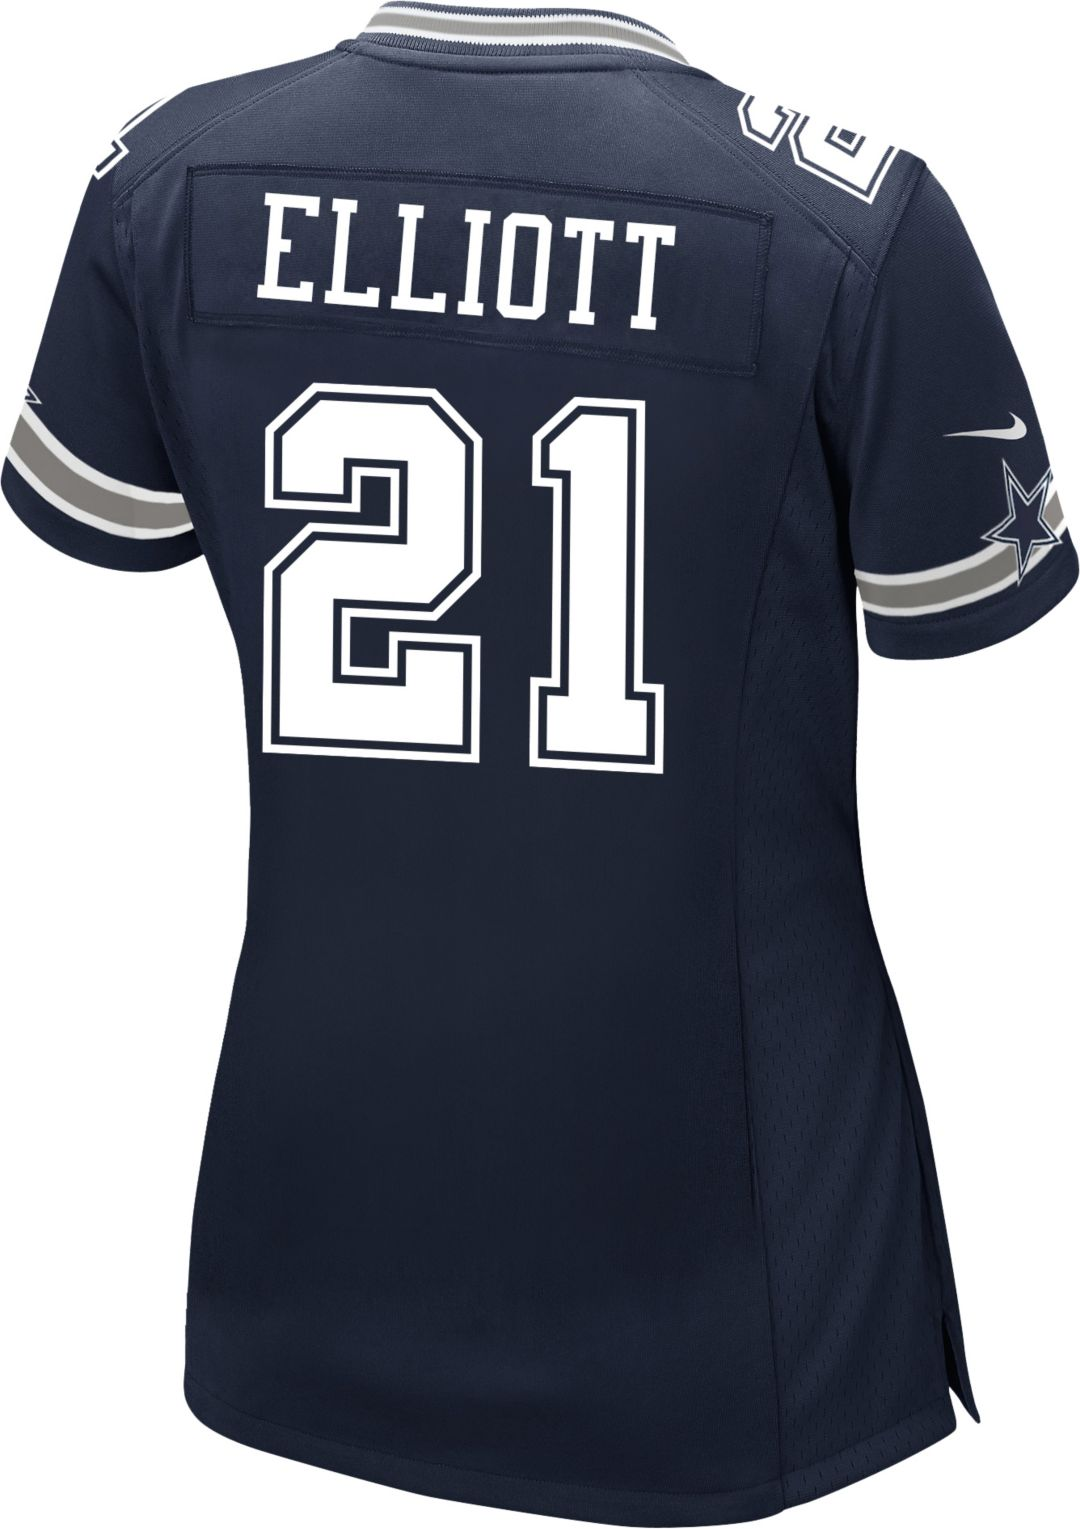 timeless design e30eb 13f8e Nike Women's Game Jersey Dallas Cowboys Ezekiel Elliott #21